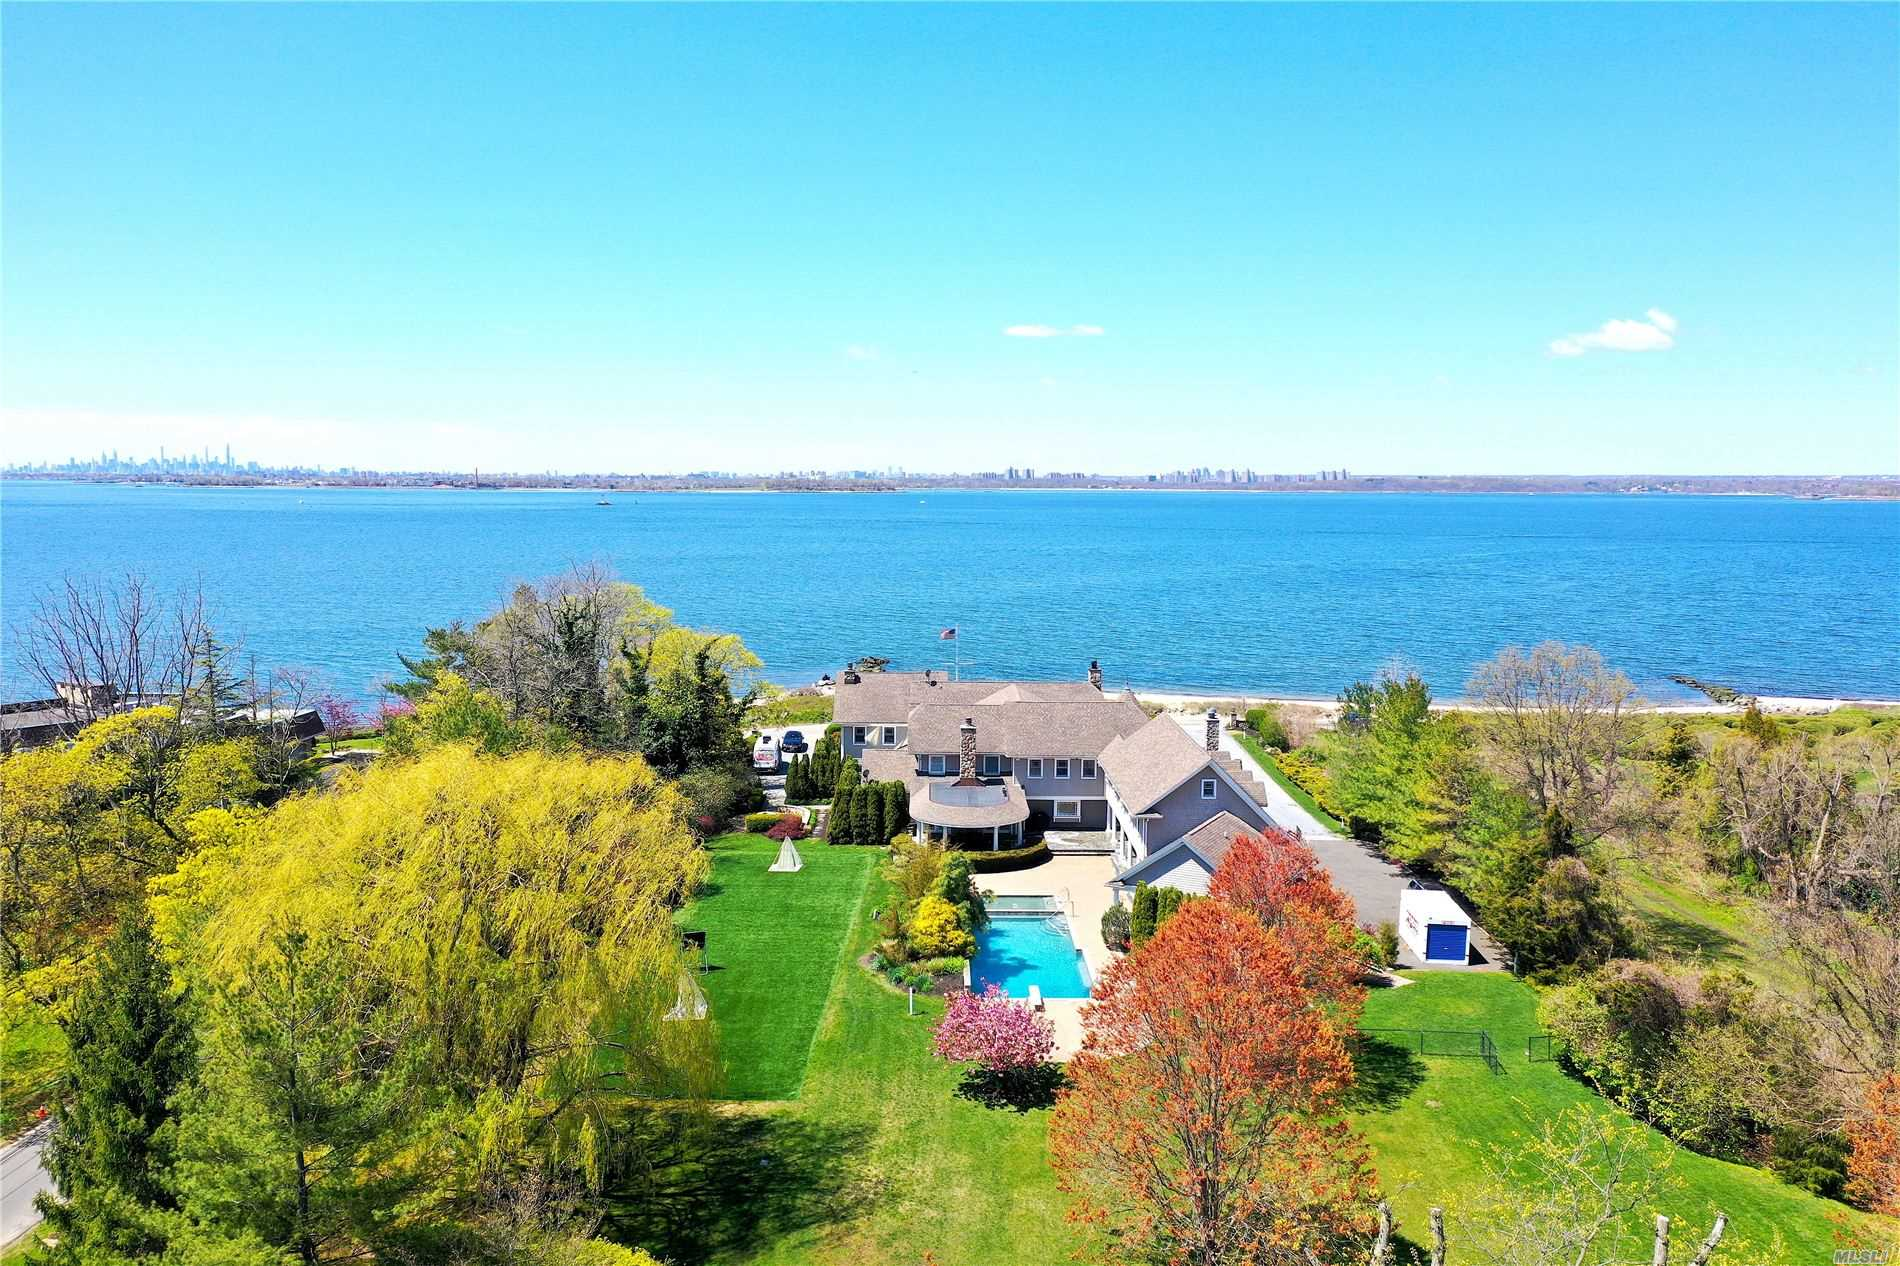 17 Lighthouse Road, Sands Point, NY 11050